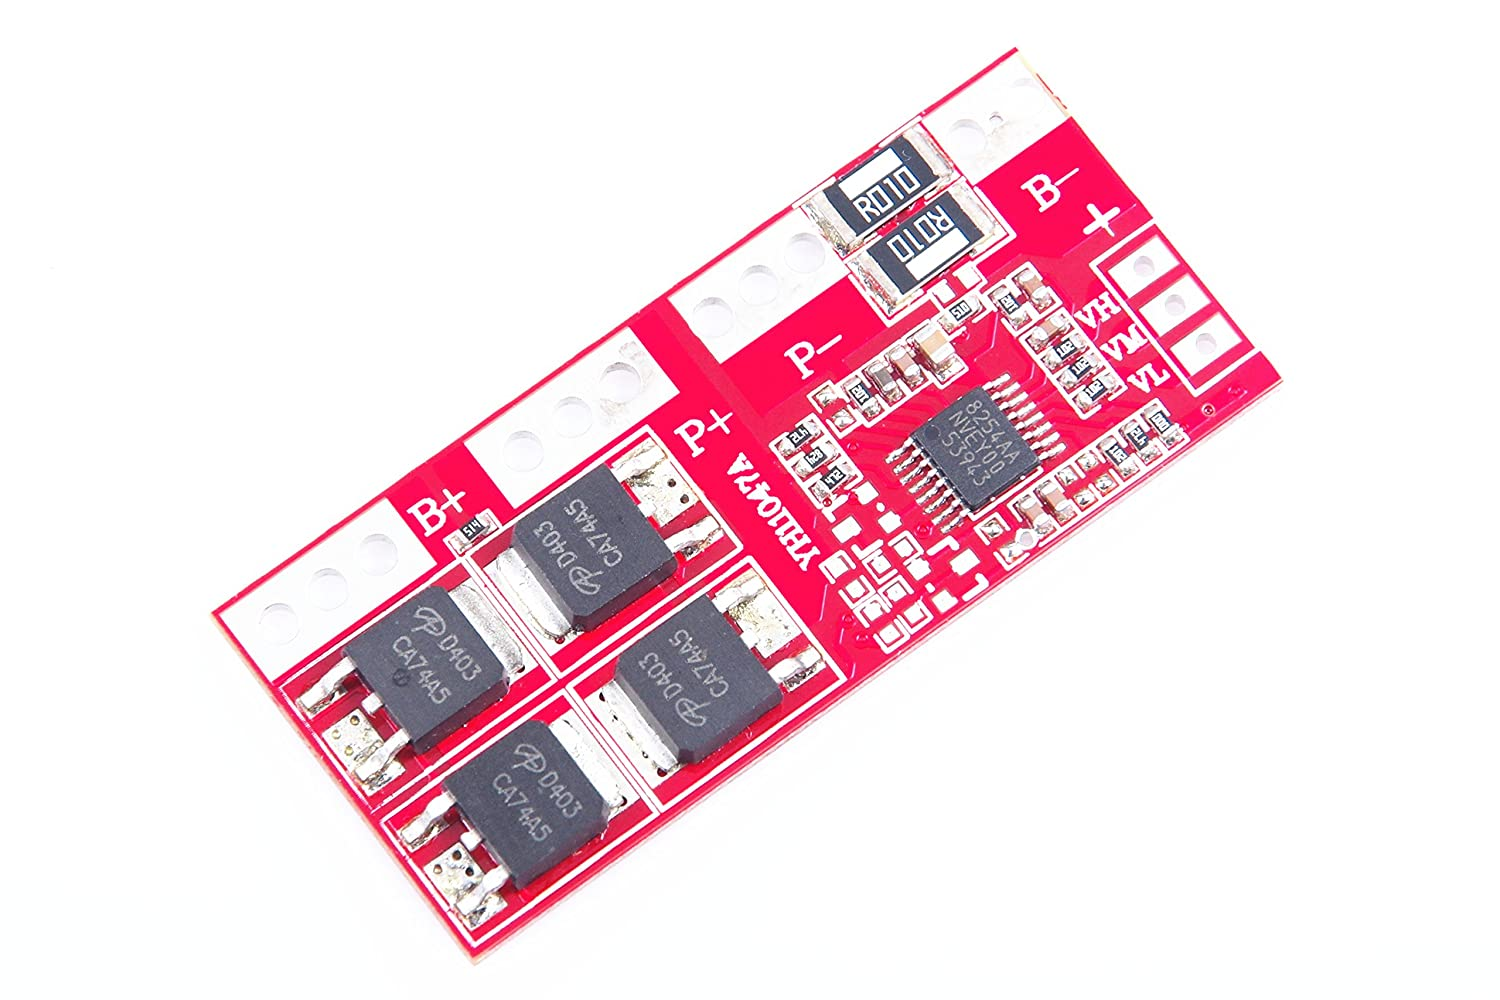 KNACRO 3S Li-ion Lithium Battery Charger Protection Board 10.8//11.1V//12.6V 30A Overcharge//Over-discharge//Overcurrent//Short-circuit Protection Circuit Board Automatic Activation